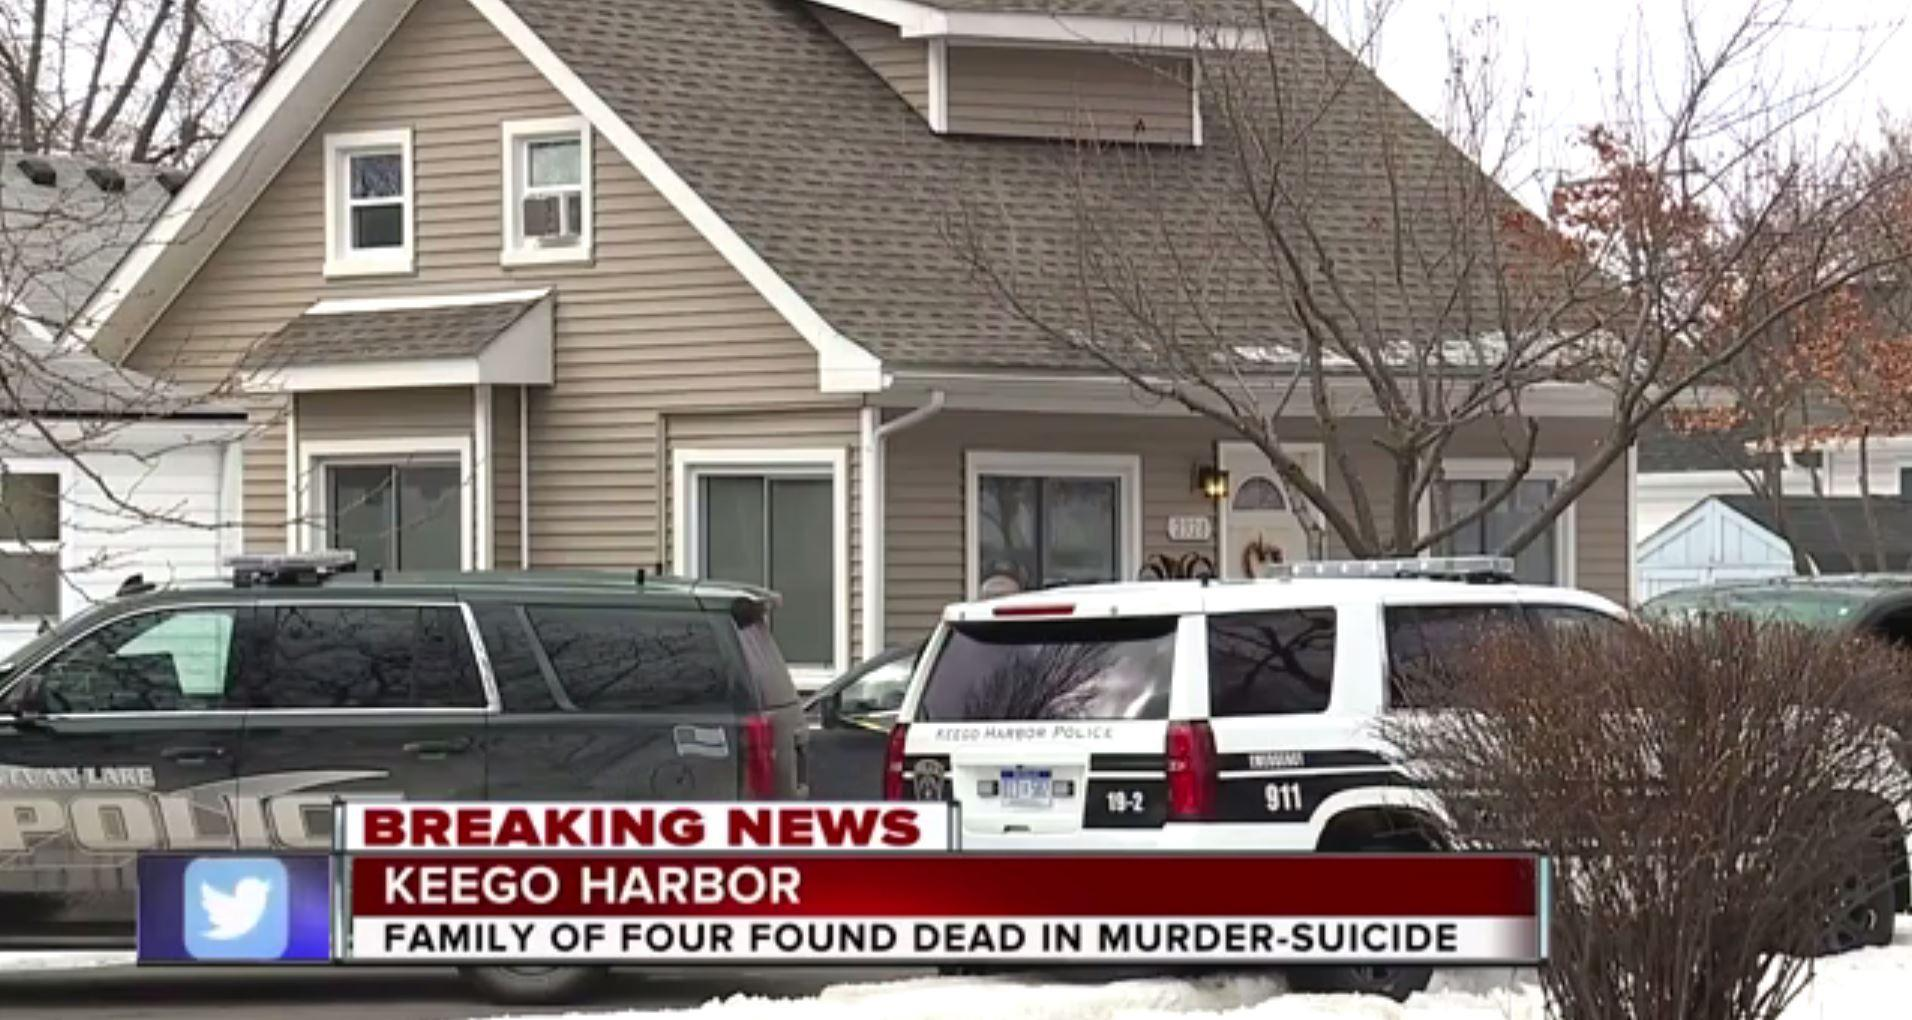 Mum shot her husband and two grown-up kids dead before turning gun on herself, say cops